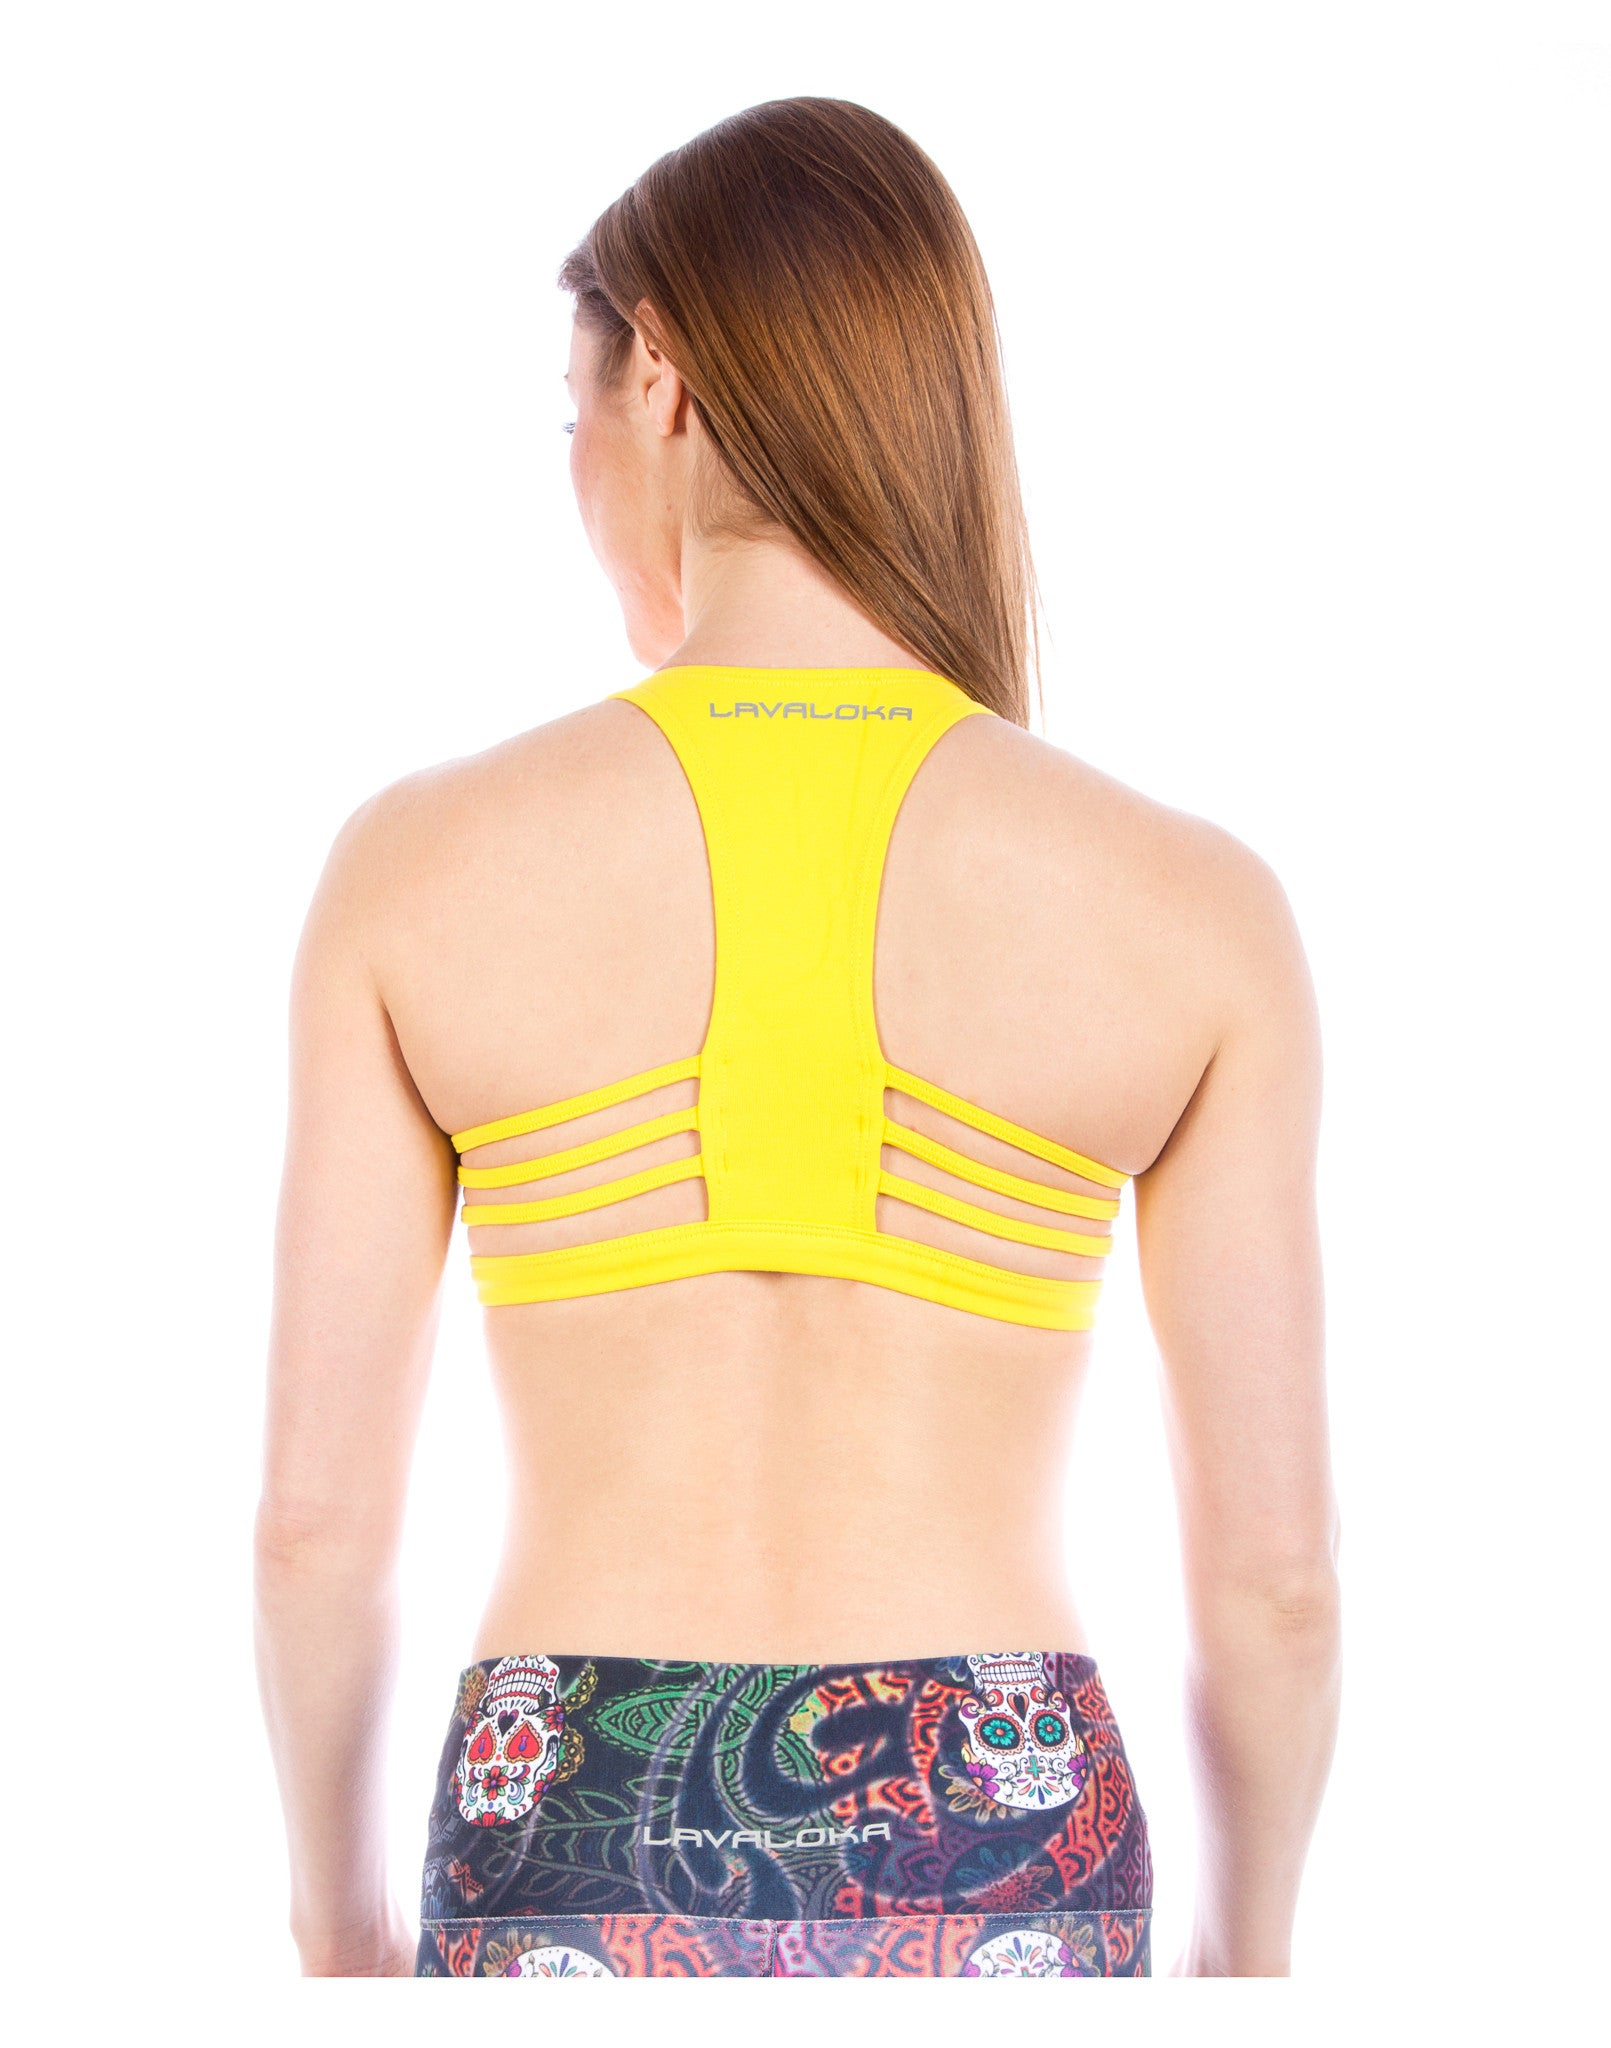 Maria Sports Bra - Sports Bra Collection LavaLoka - Yellow - buy now in every color